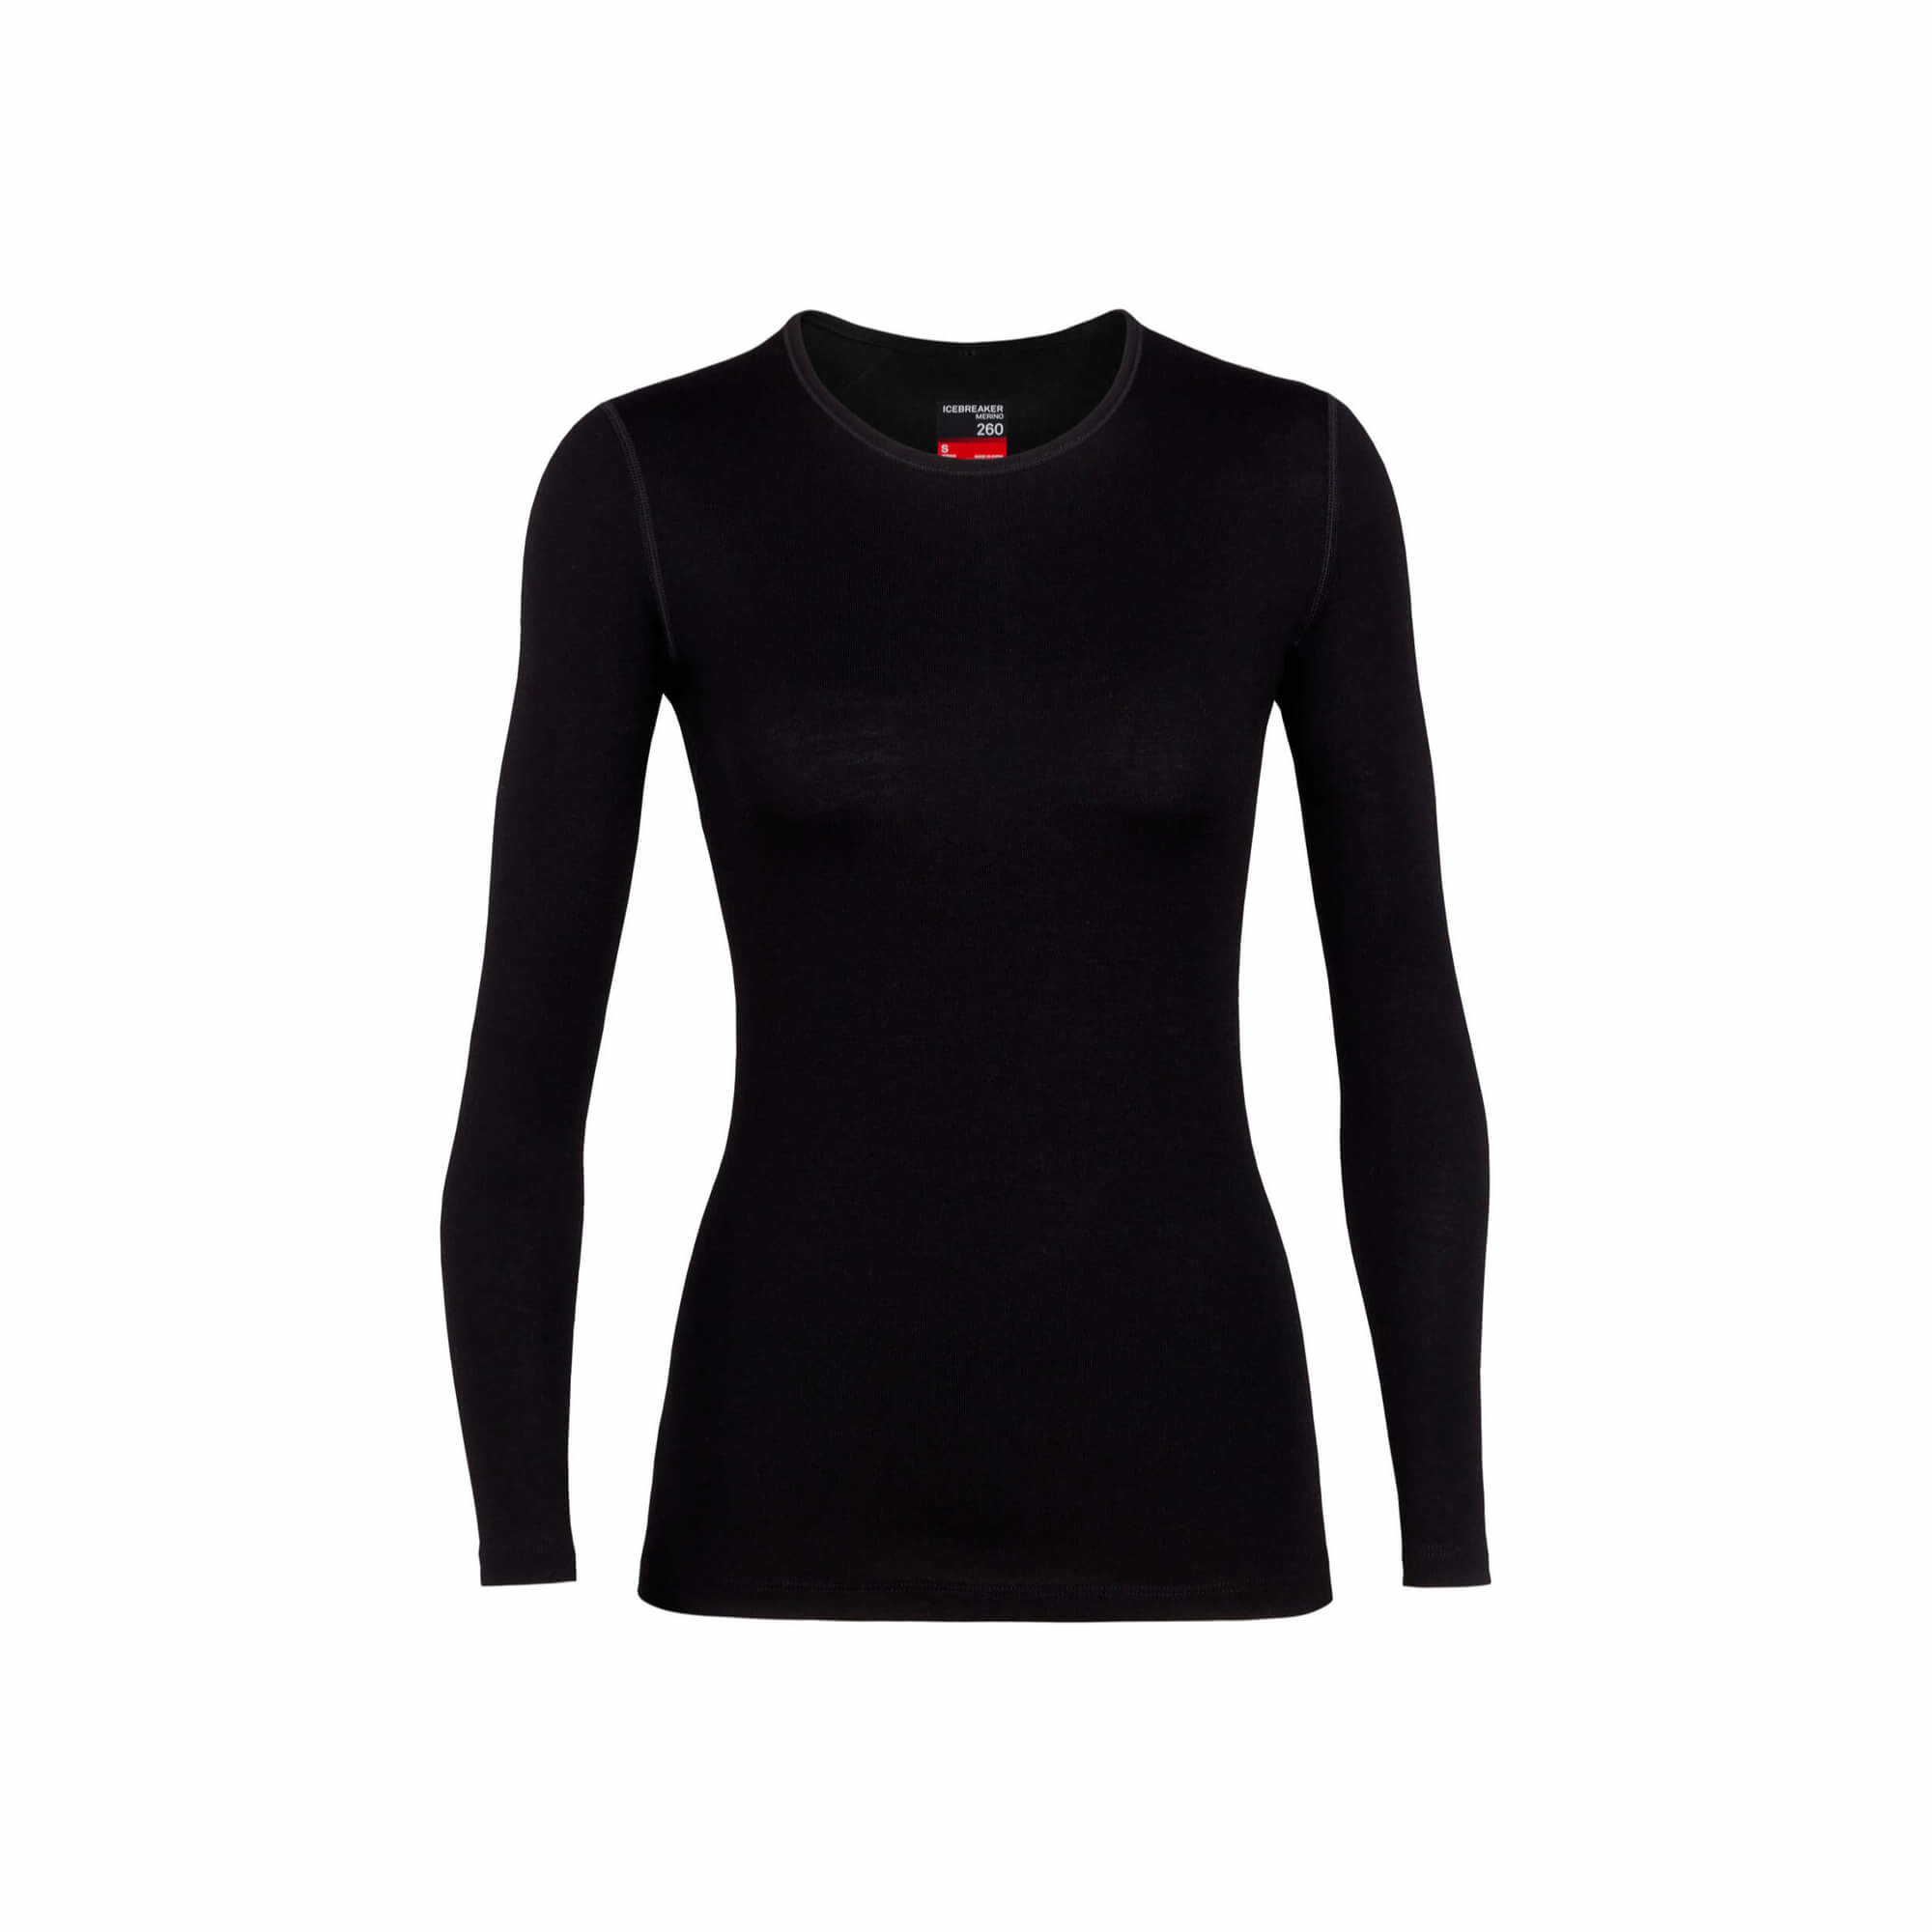 Women's 260 Tech Long Sleeve Crewe-2